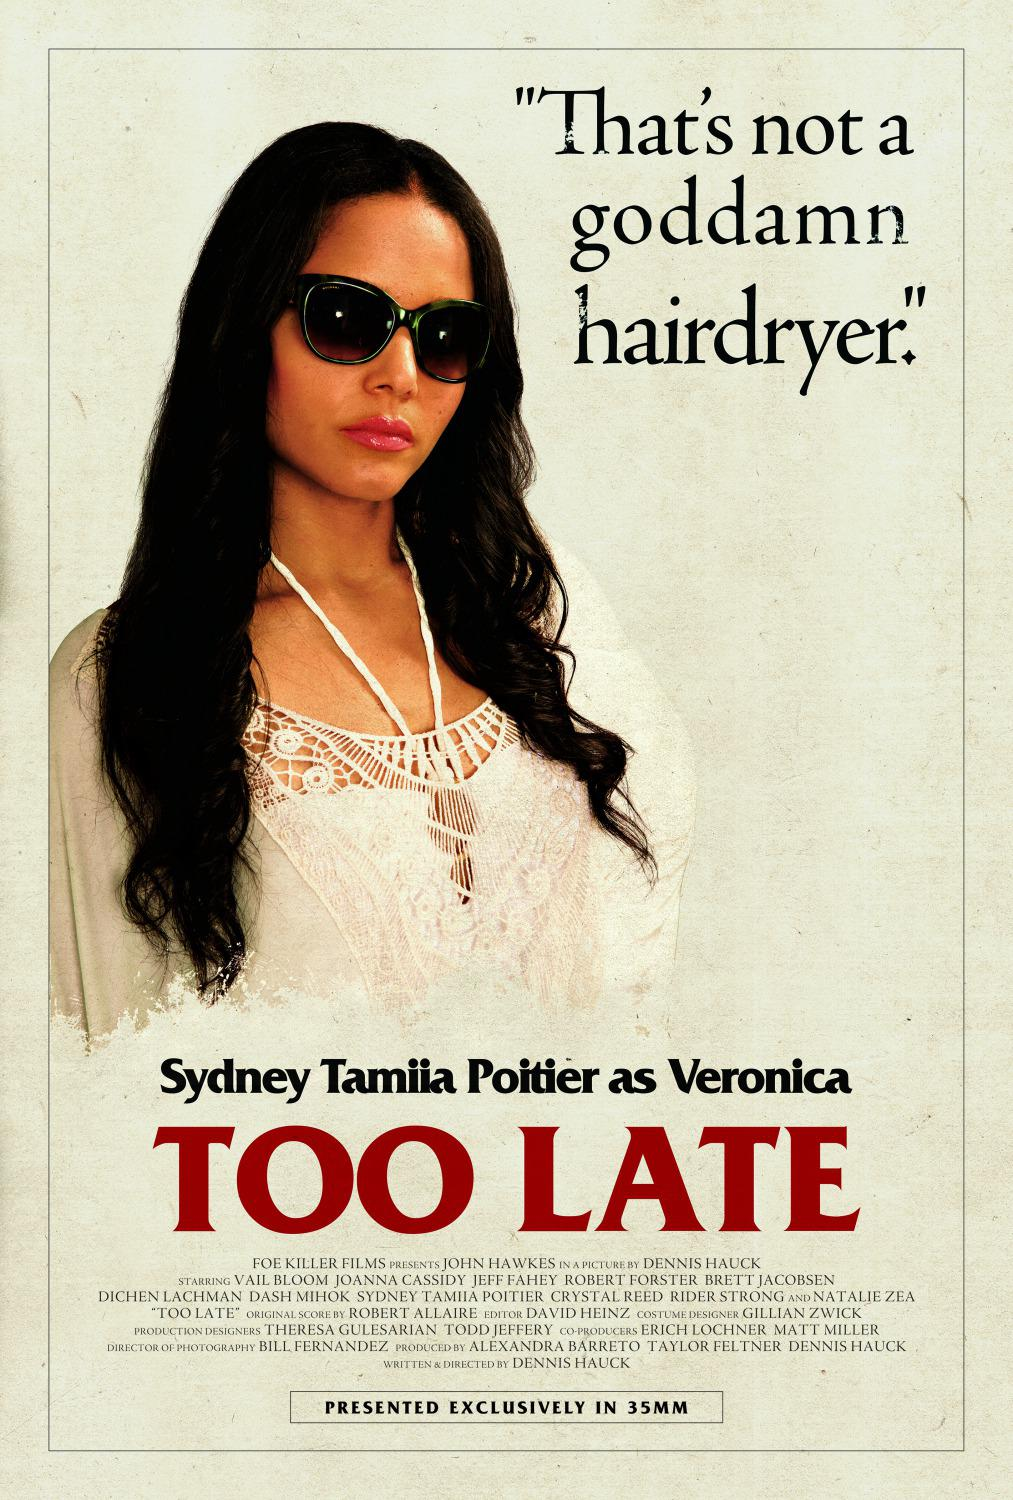 Troppo Tardi - Too Late - Sydney Tamila Poitier as Veronica